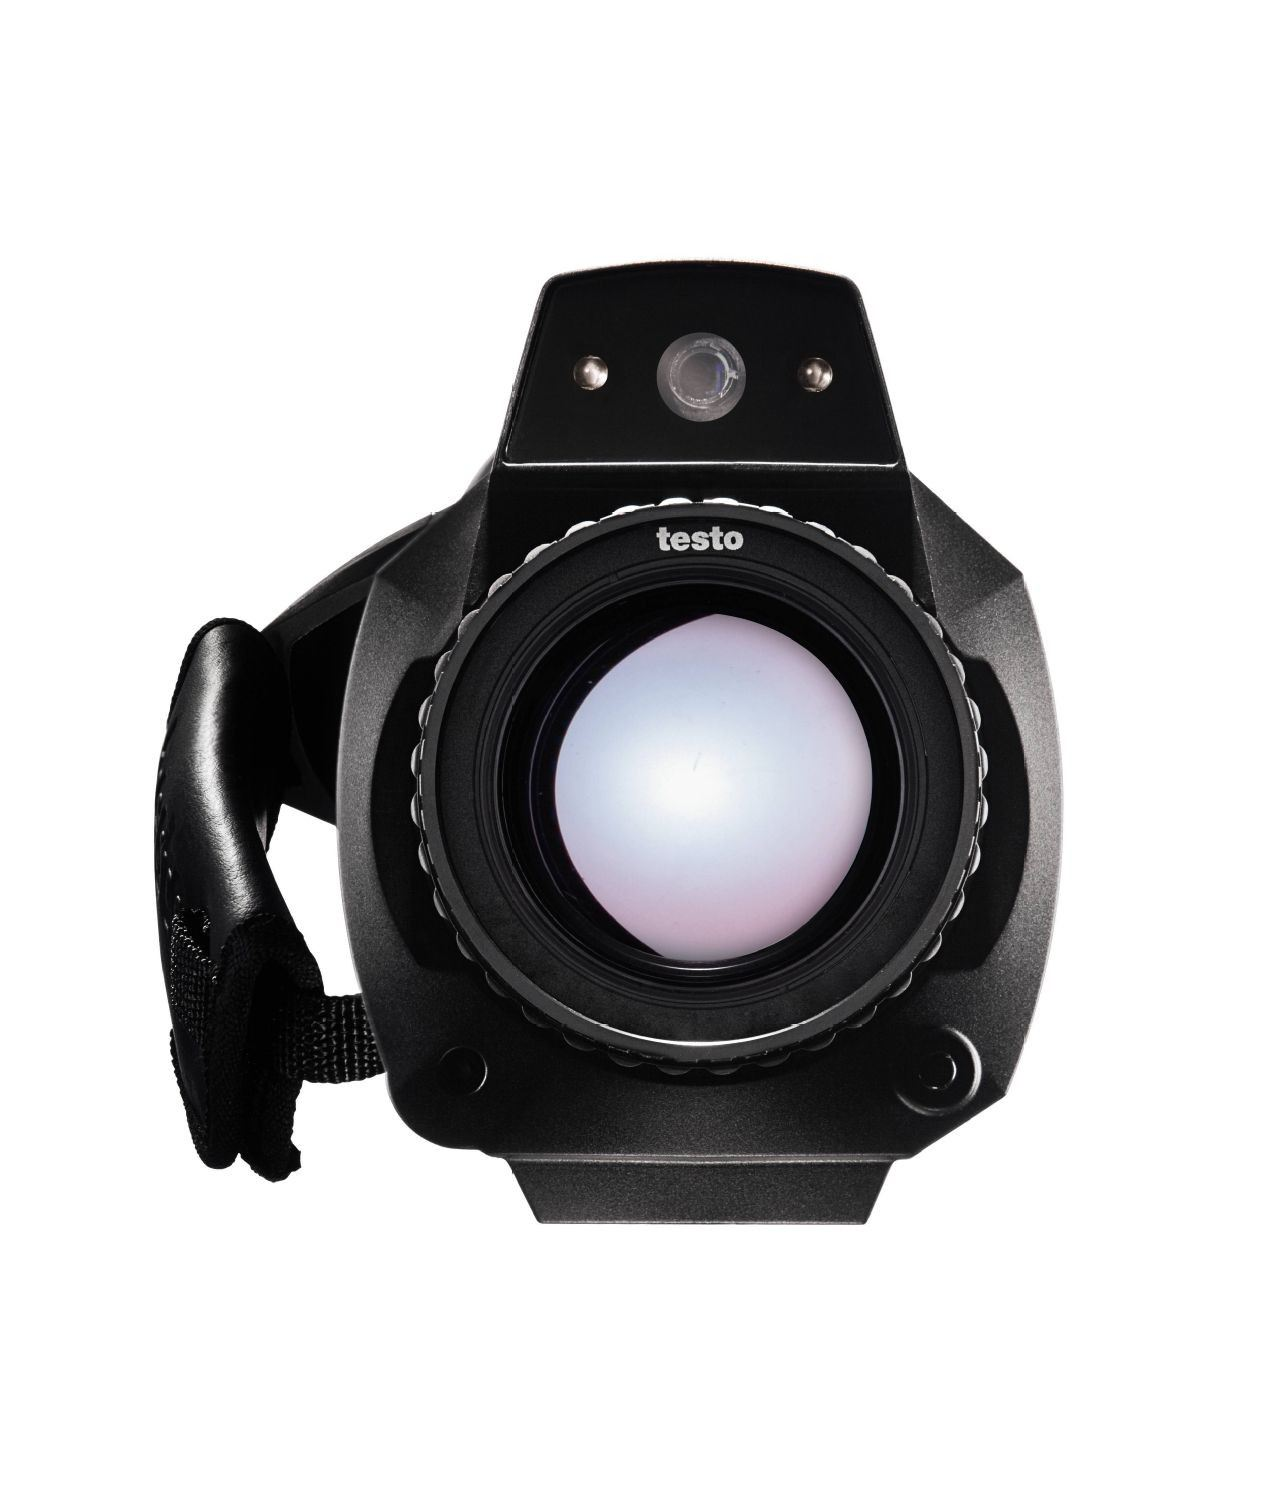 Testo 890 kit - Thermal Imager with Two Lenses